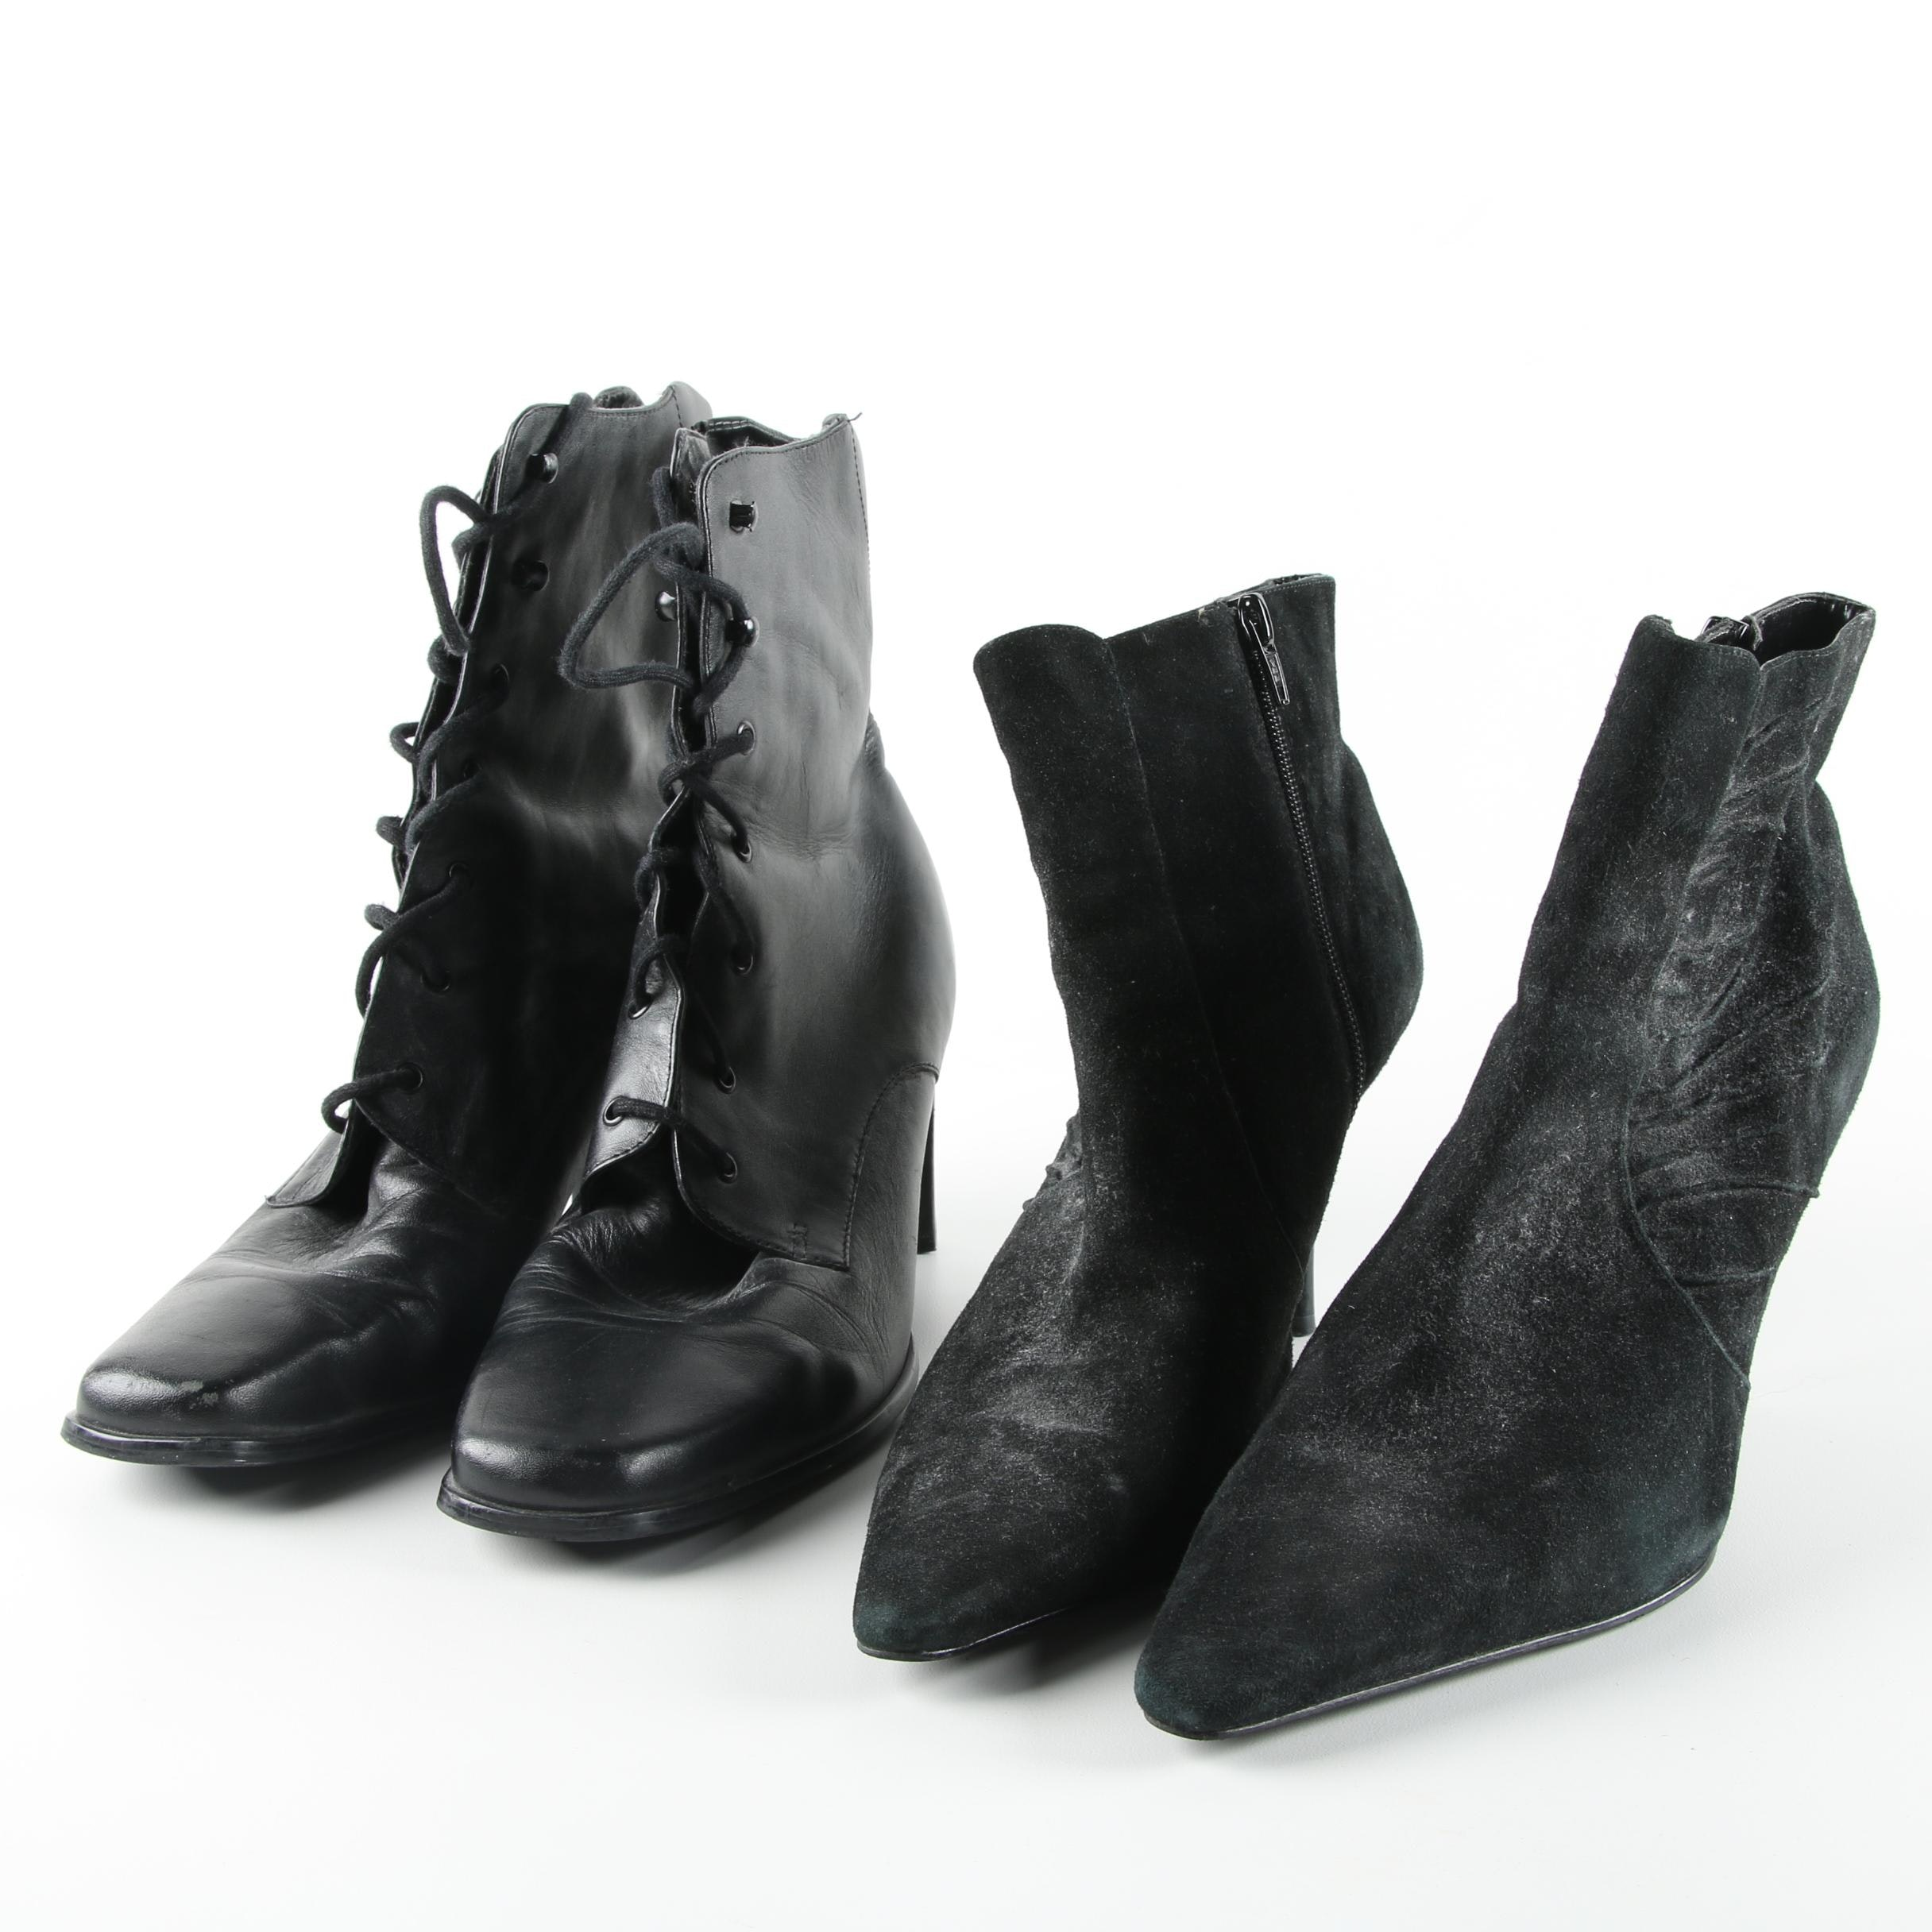 Women's Black Leather and Suede Heeled Booties Including Enzo Angiolini